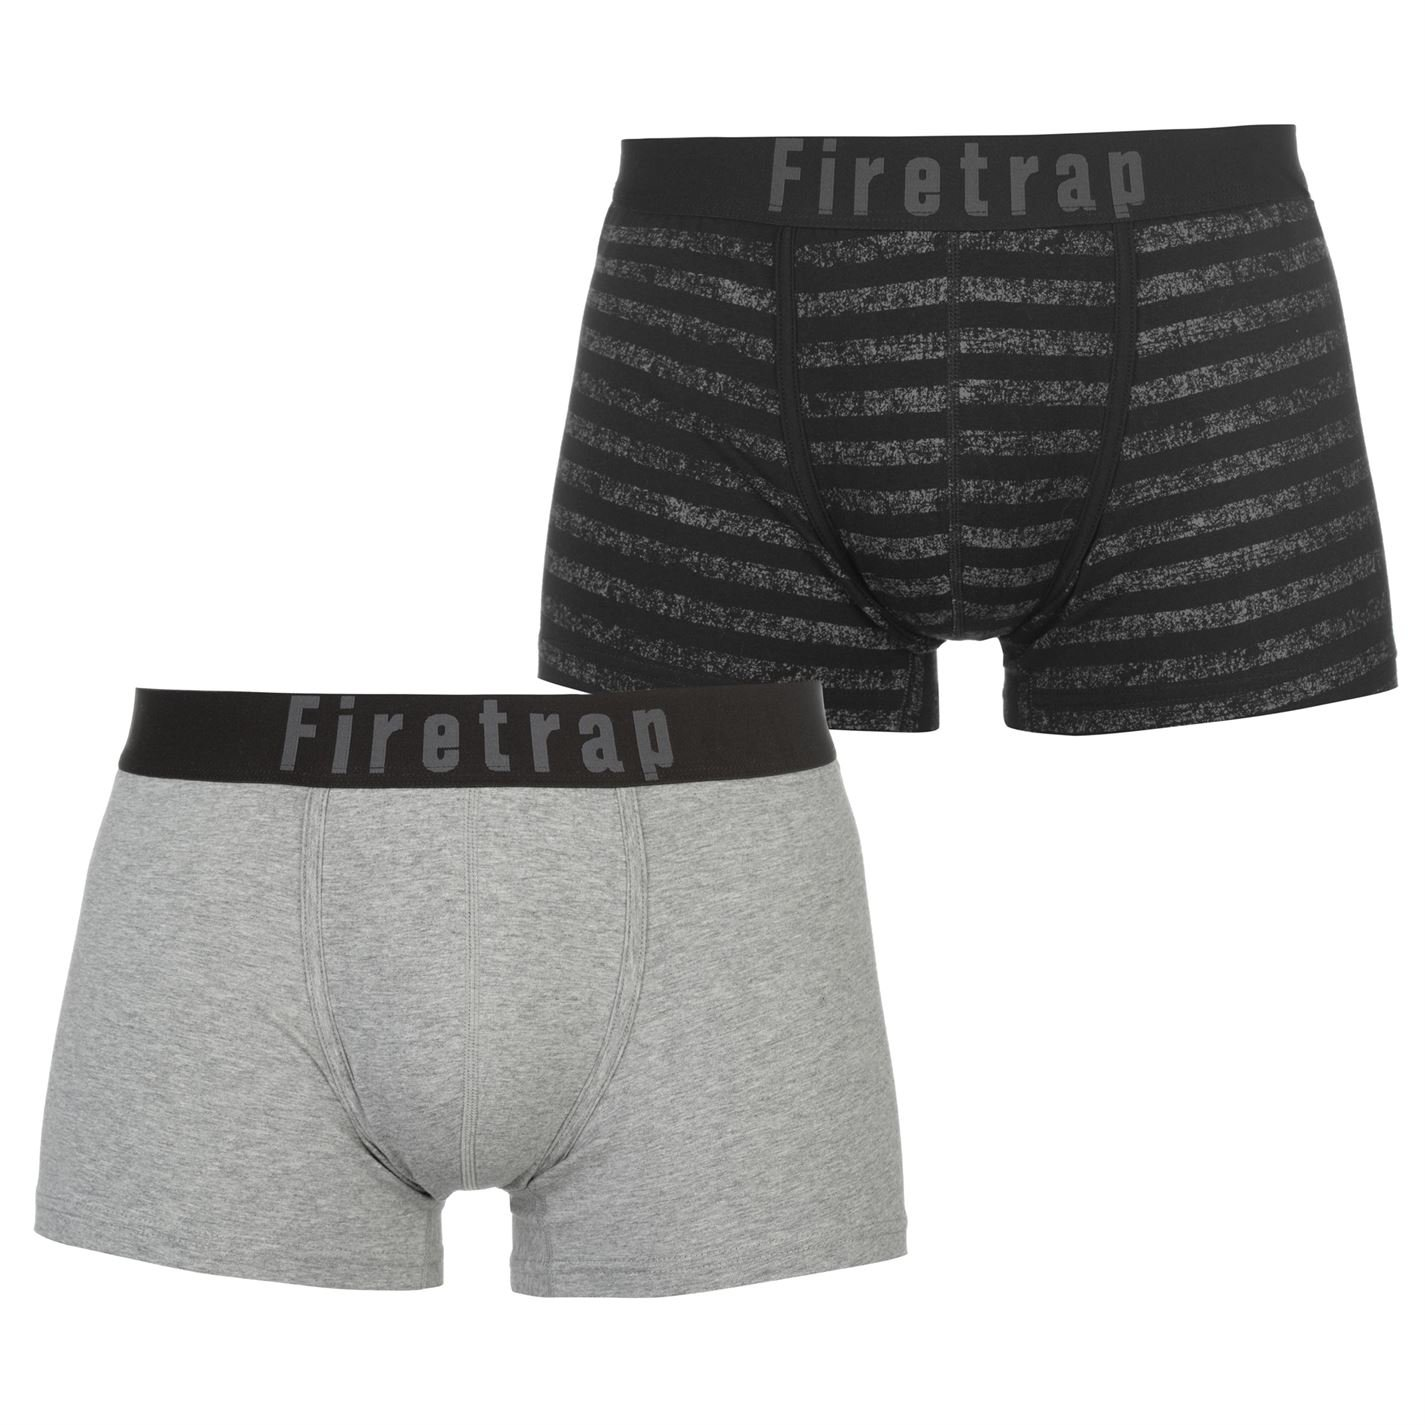 Firetrap Mens Boxers Trunks 2 Pack Underwear Comfortable Fit